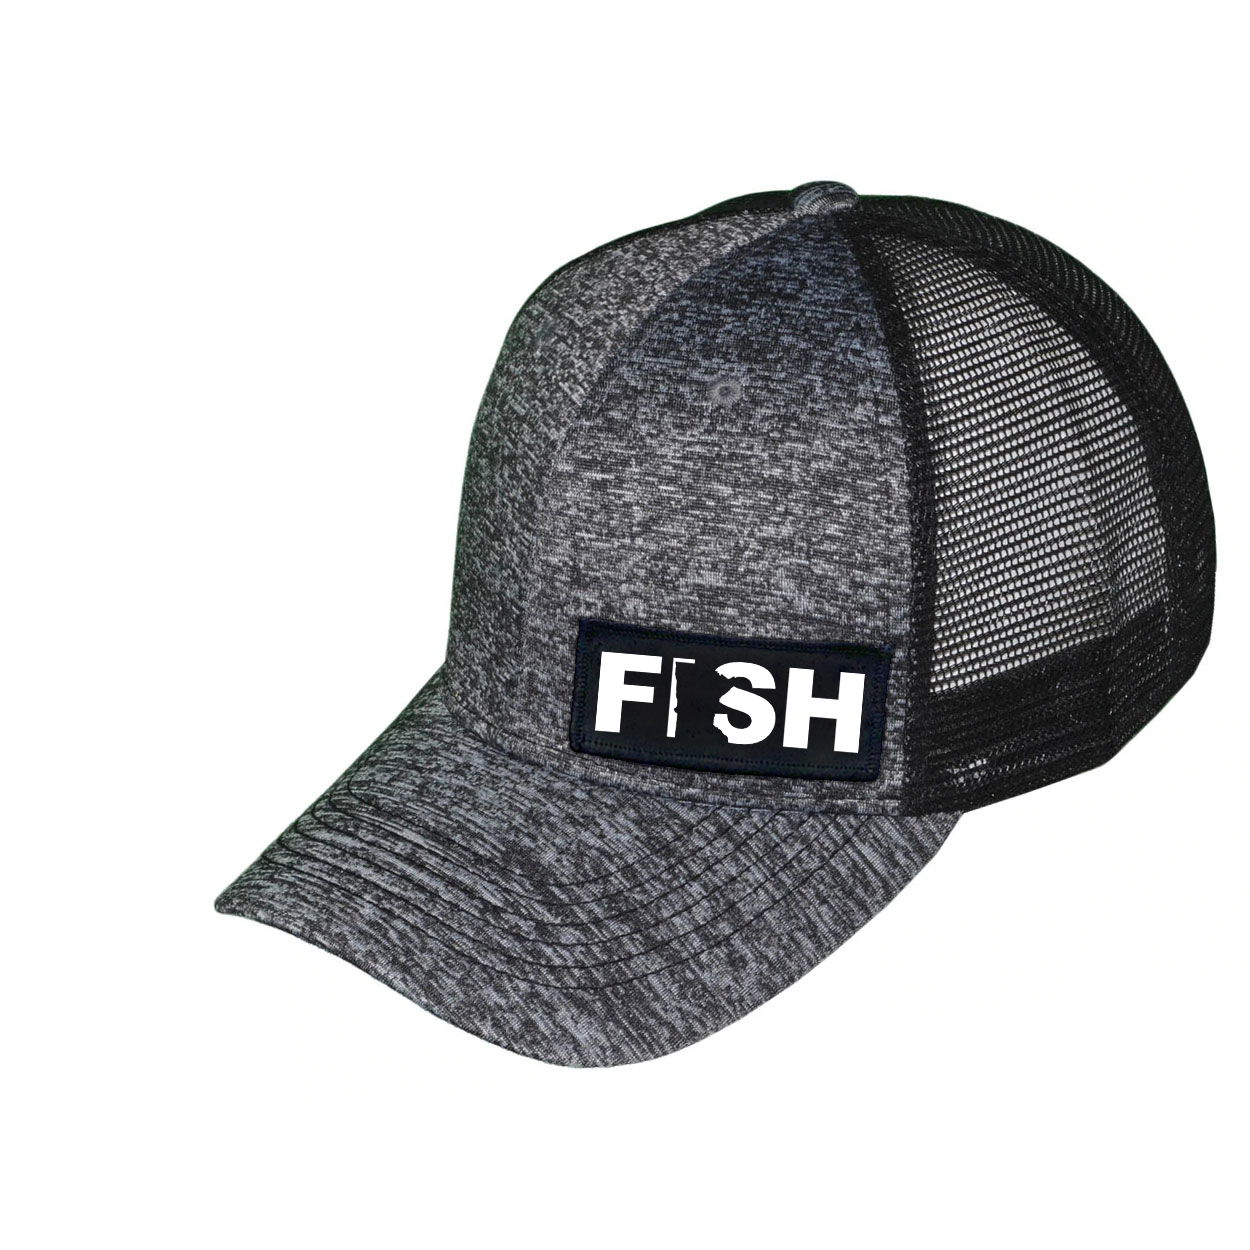 Fish Minnesota Night Out Woven Patch Melange Snapback Trucker Hat Gray/Black (White Logo)